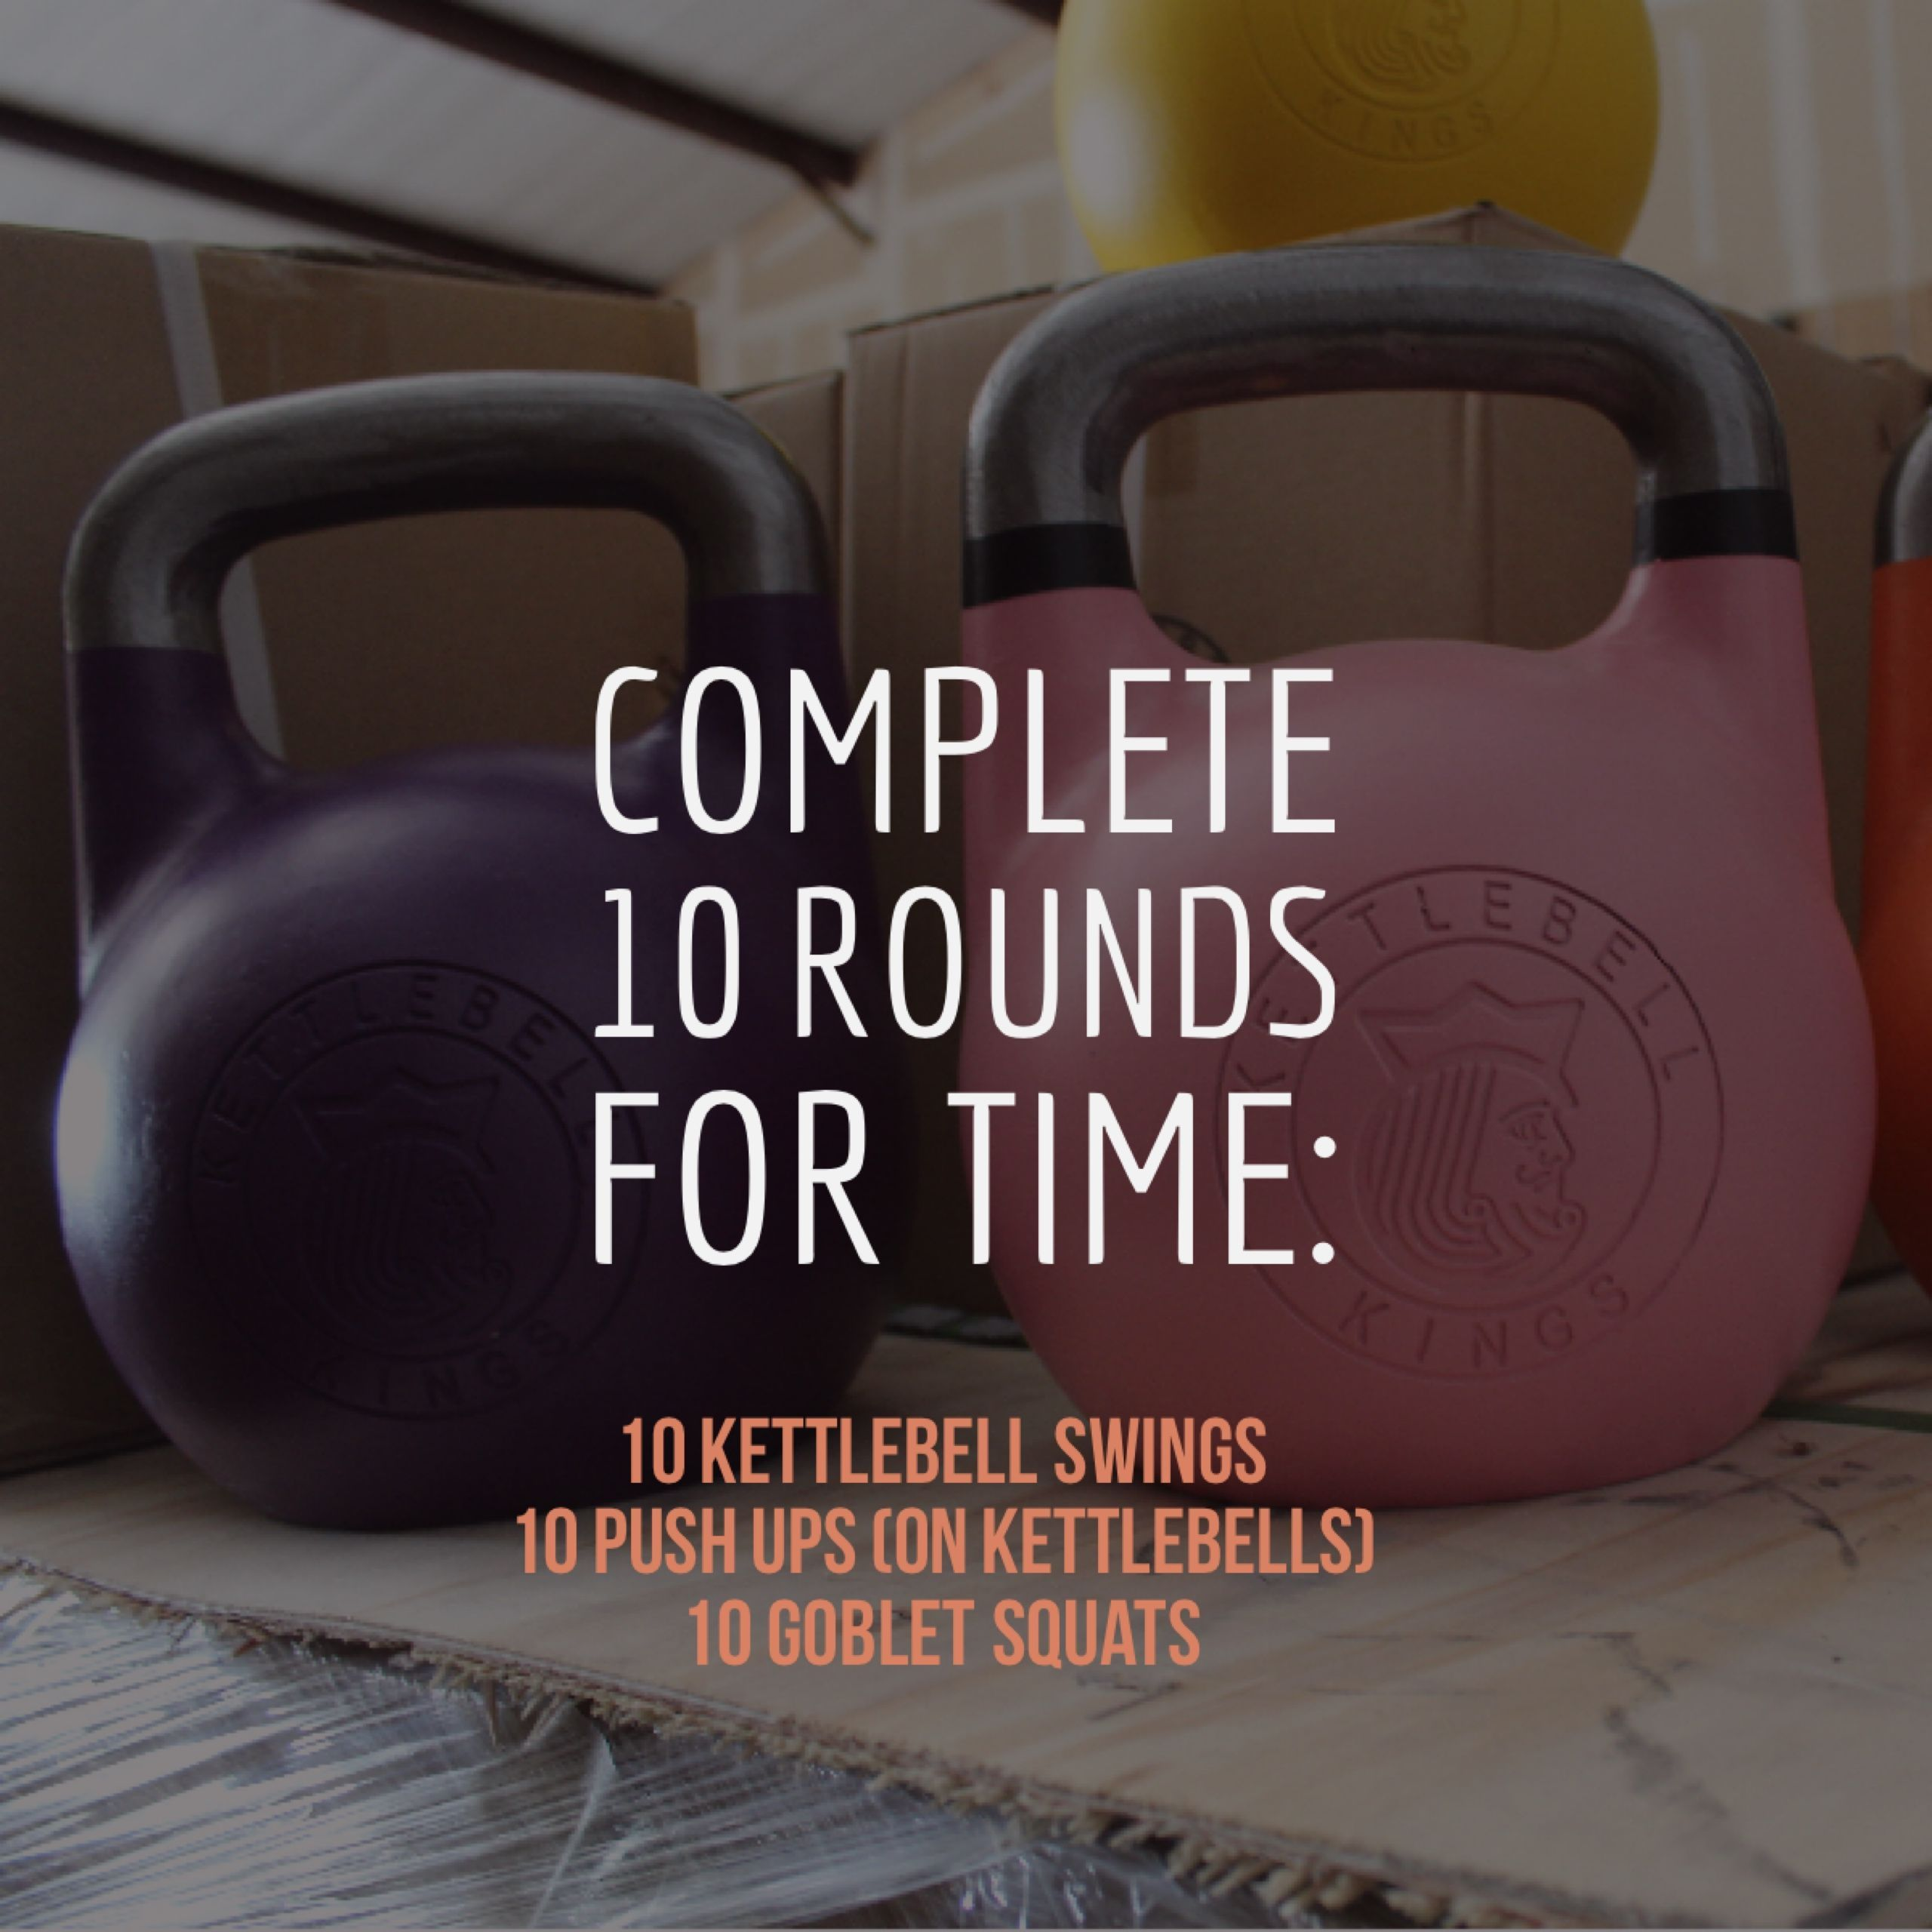 #30Minute #Blitz #Fitness #muscle fitness #workout Do as fast as possible while maintaining proper f...